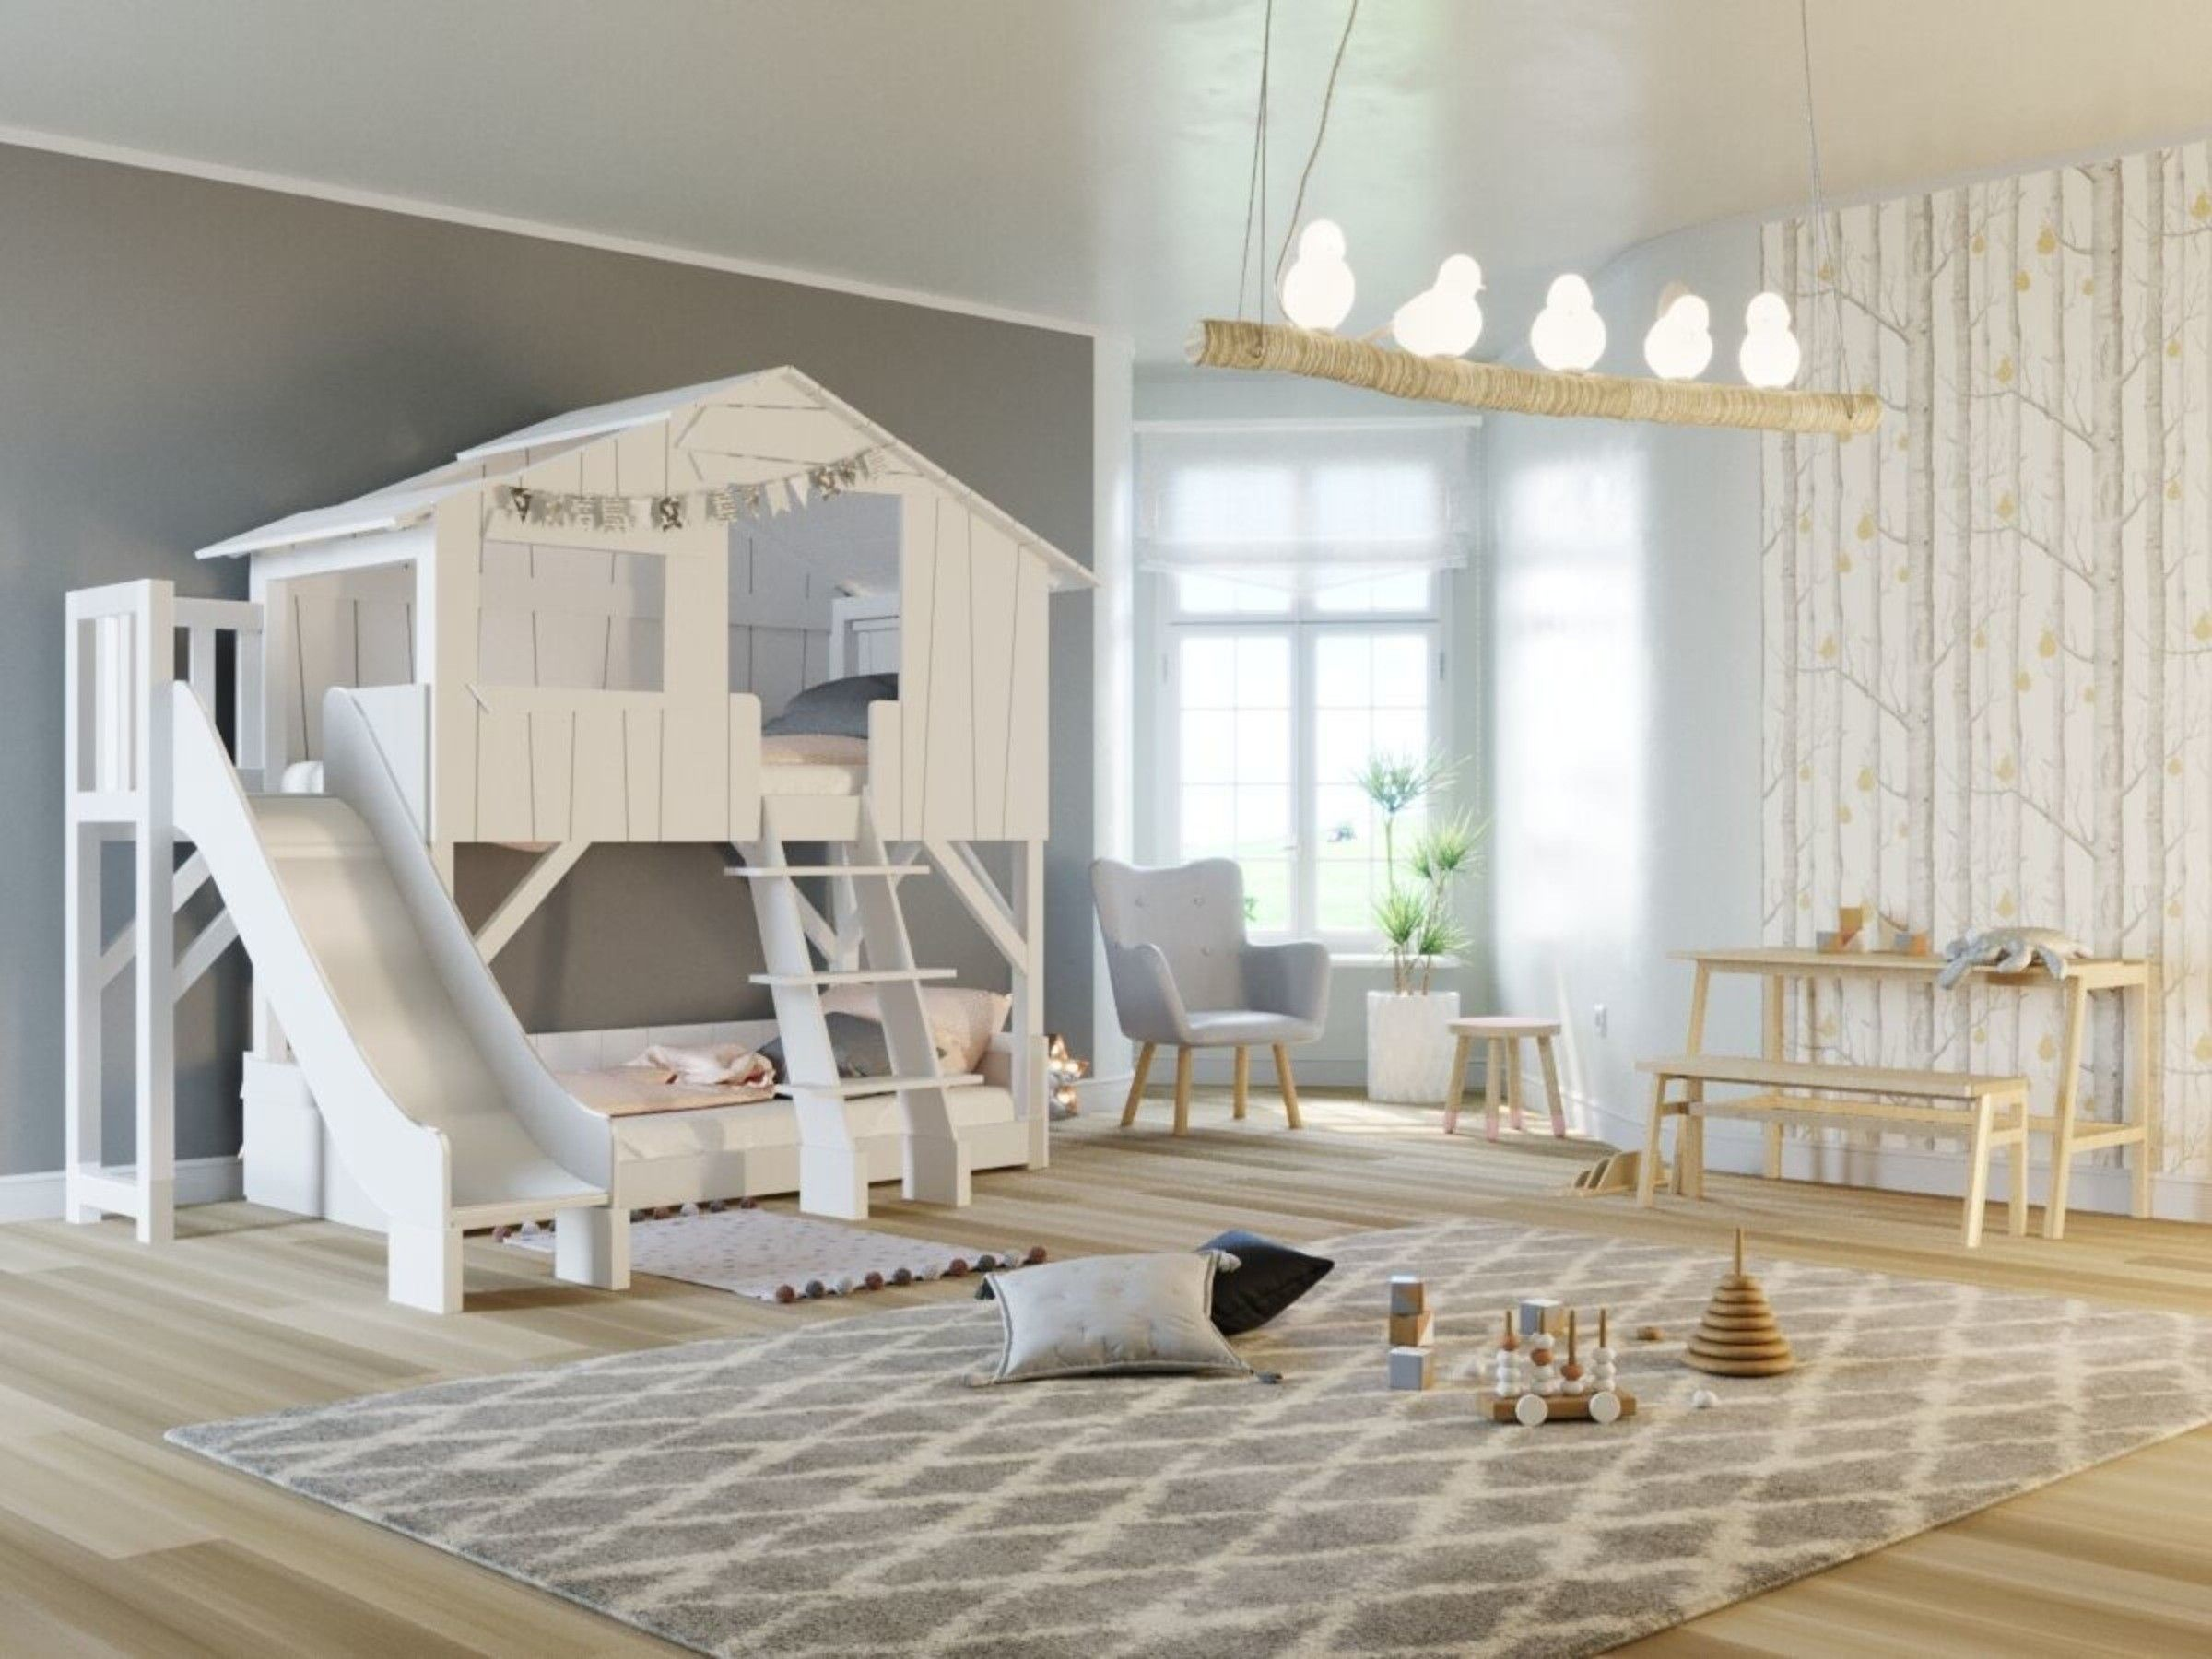 Best Discover The Playful Slide That You Can Attach To The Famous Tree House Treehouse Homedecor 400 x 300